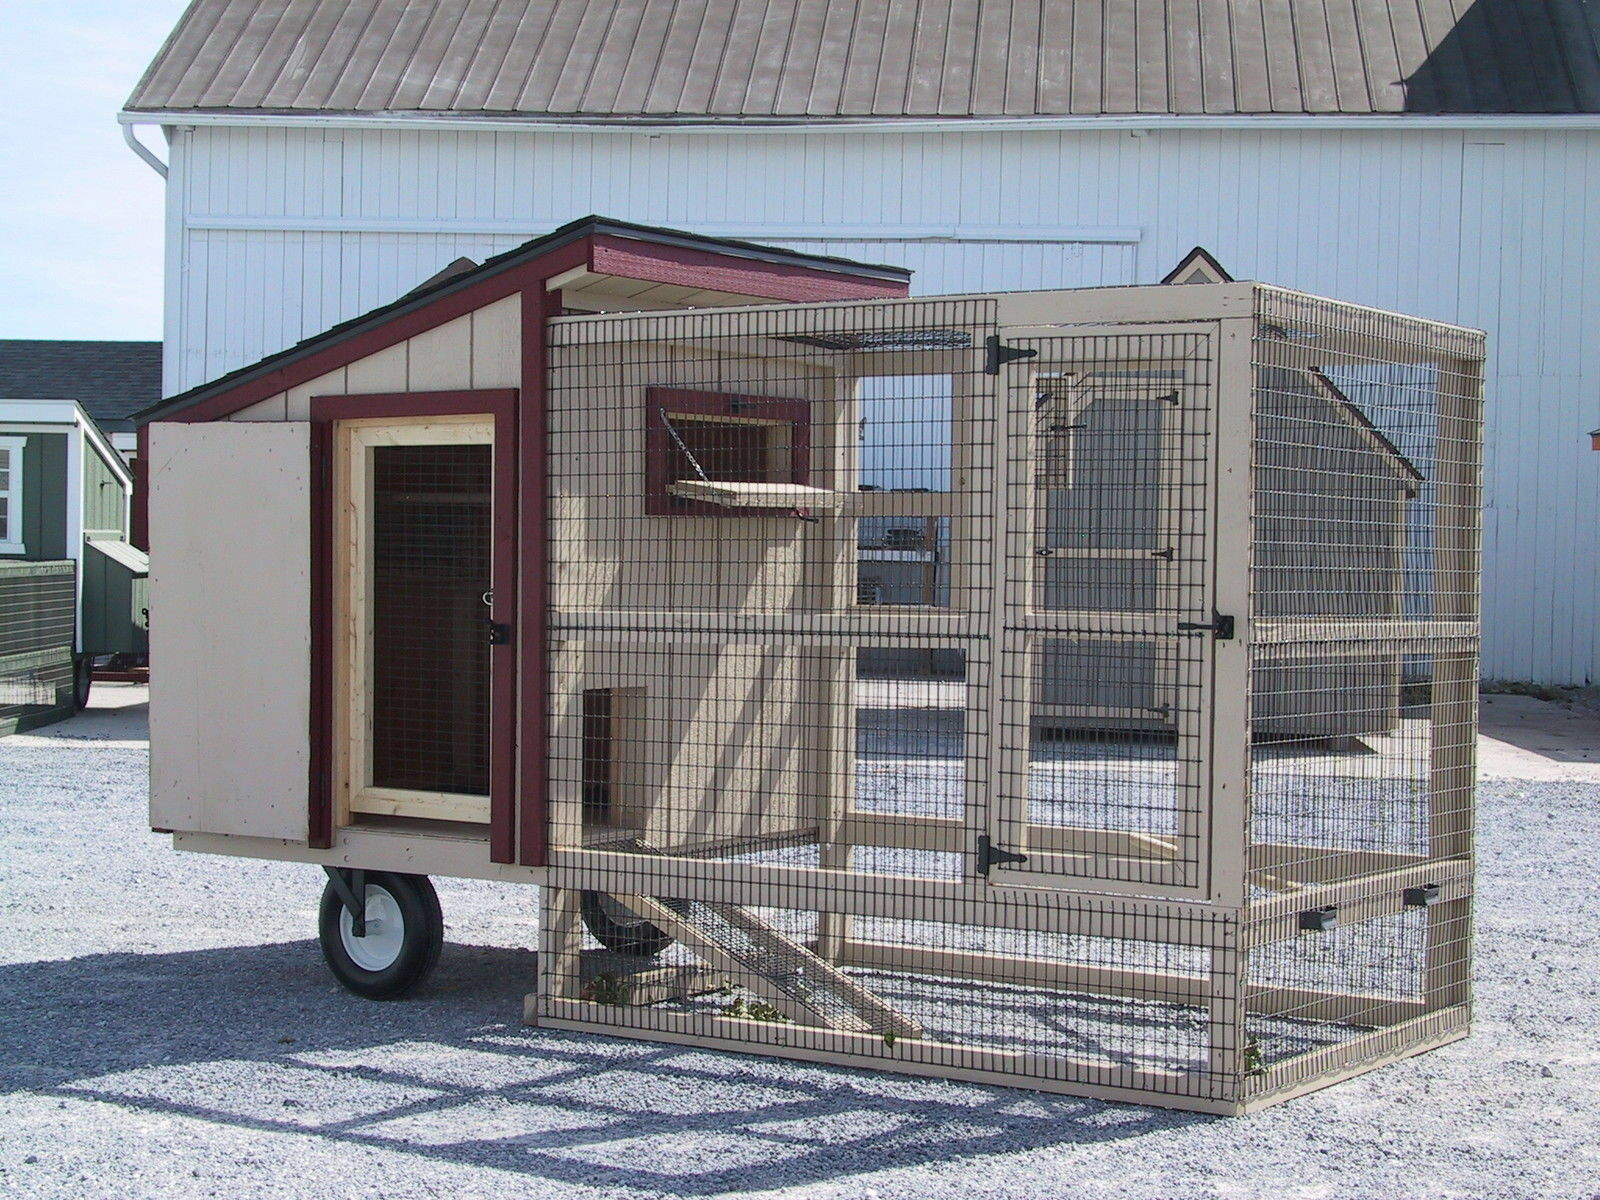 quails cage - photo #25